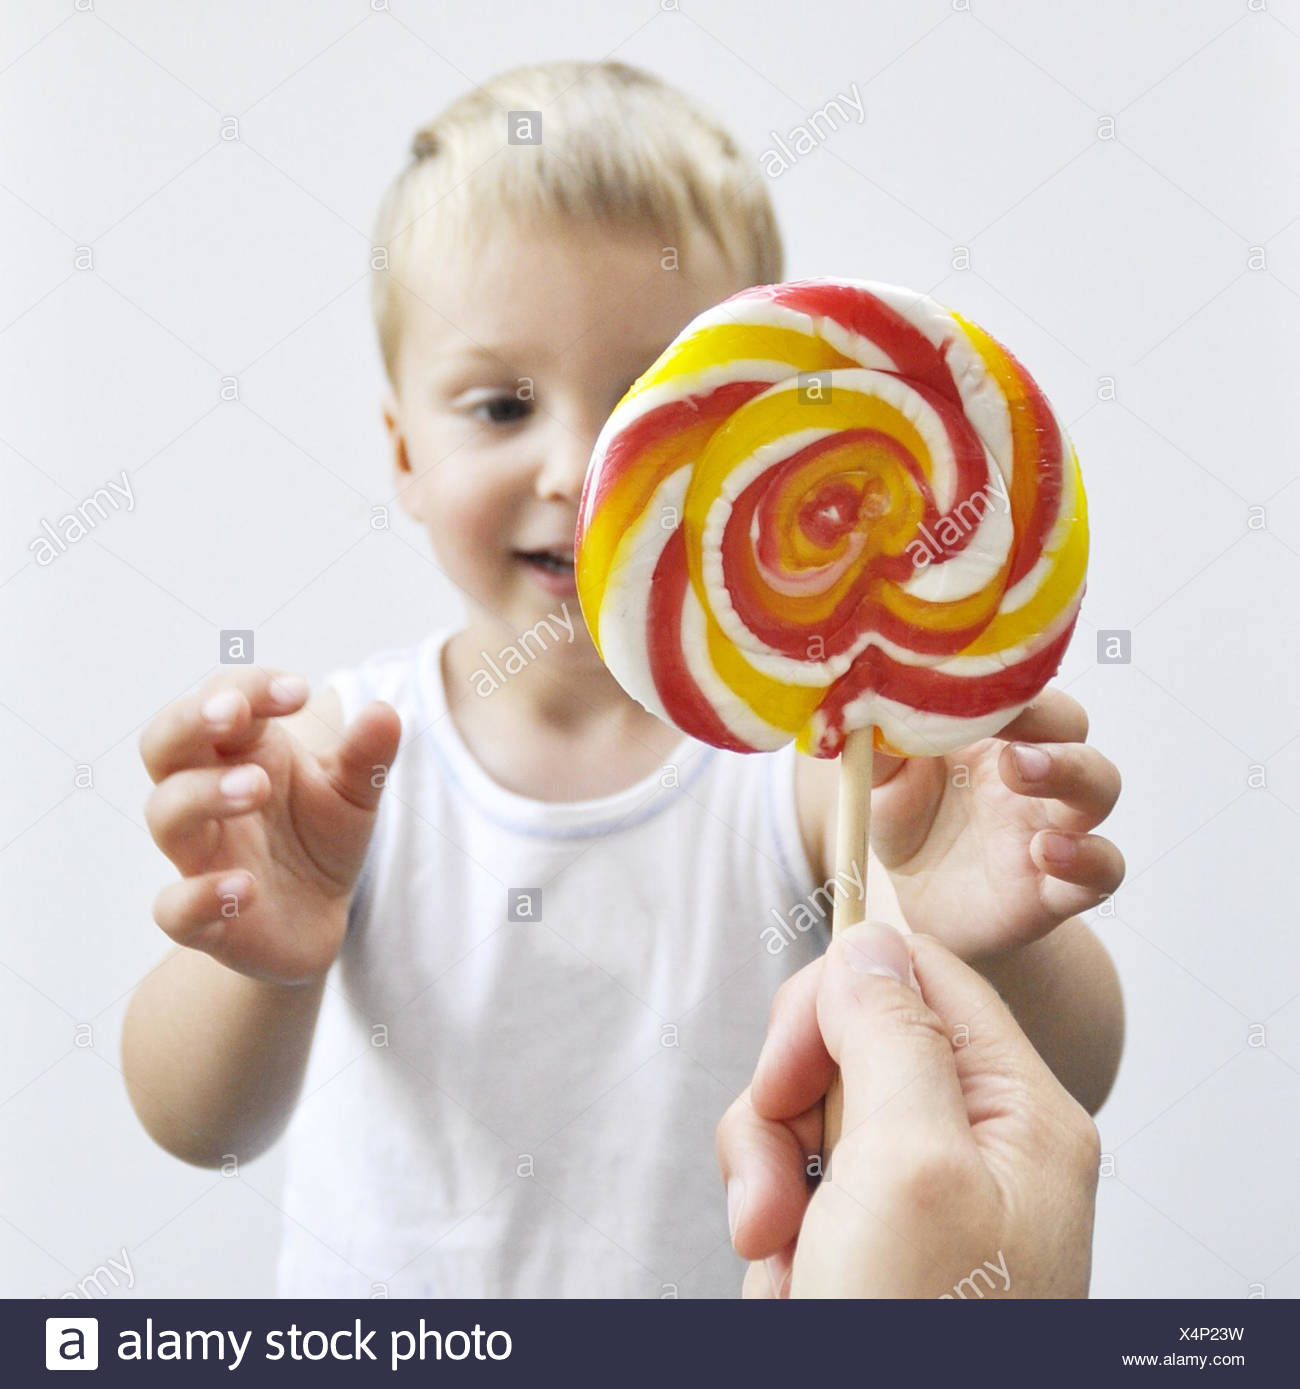 What a large lollipop this man had